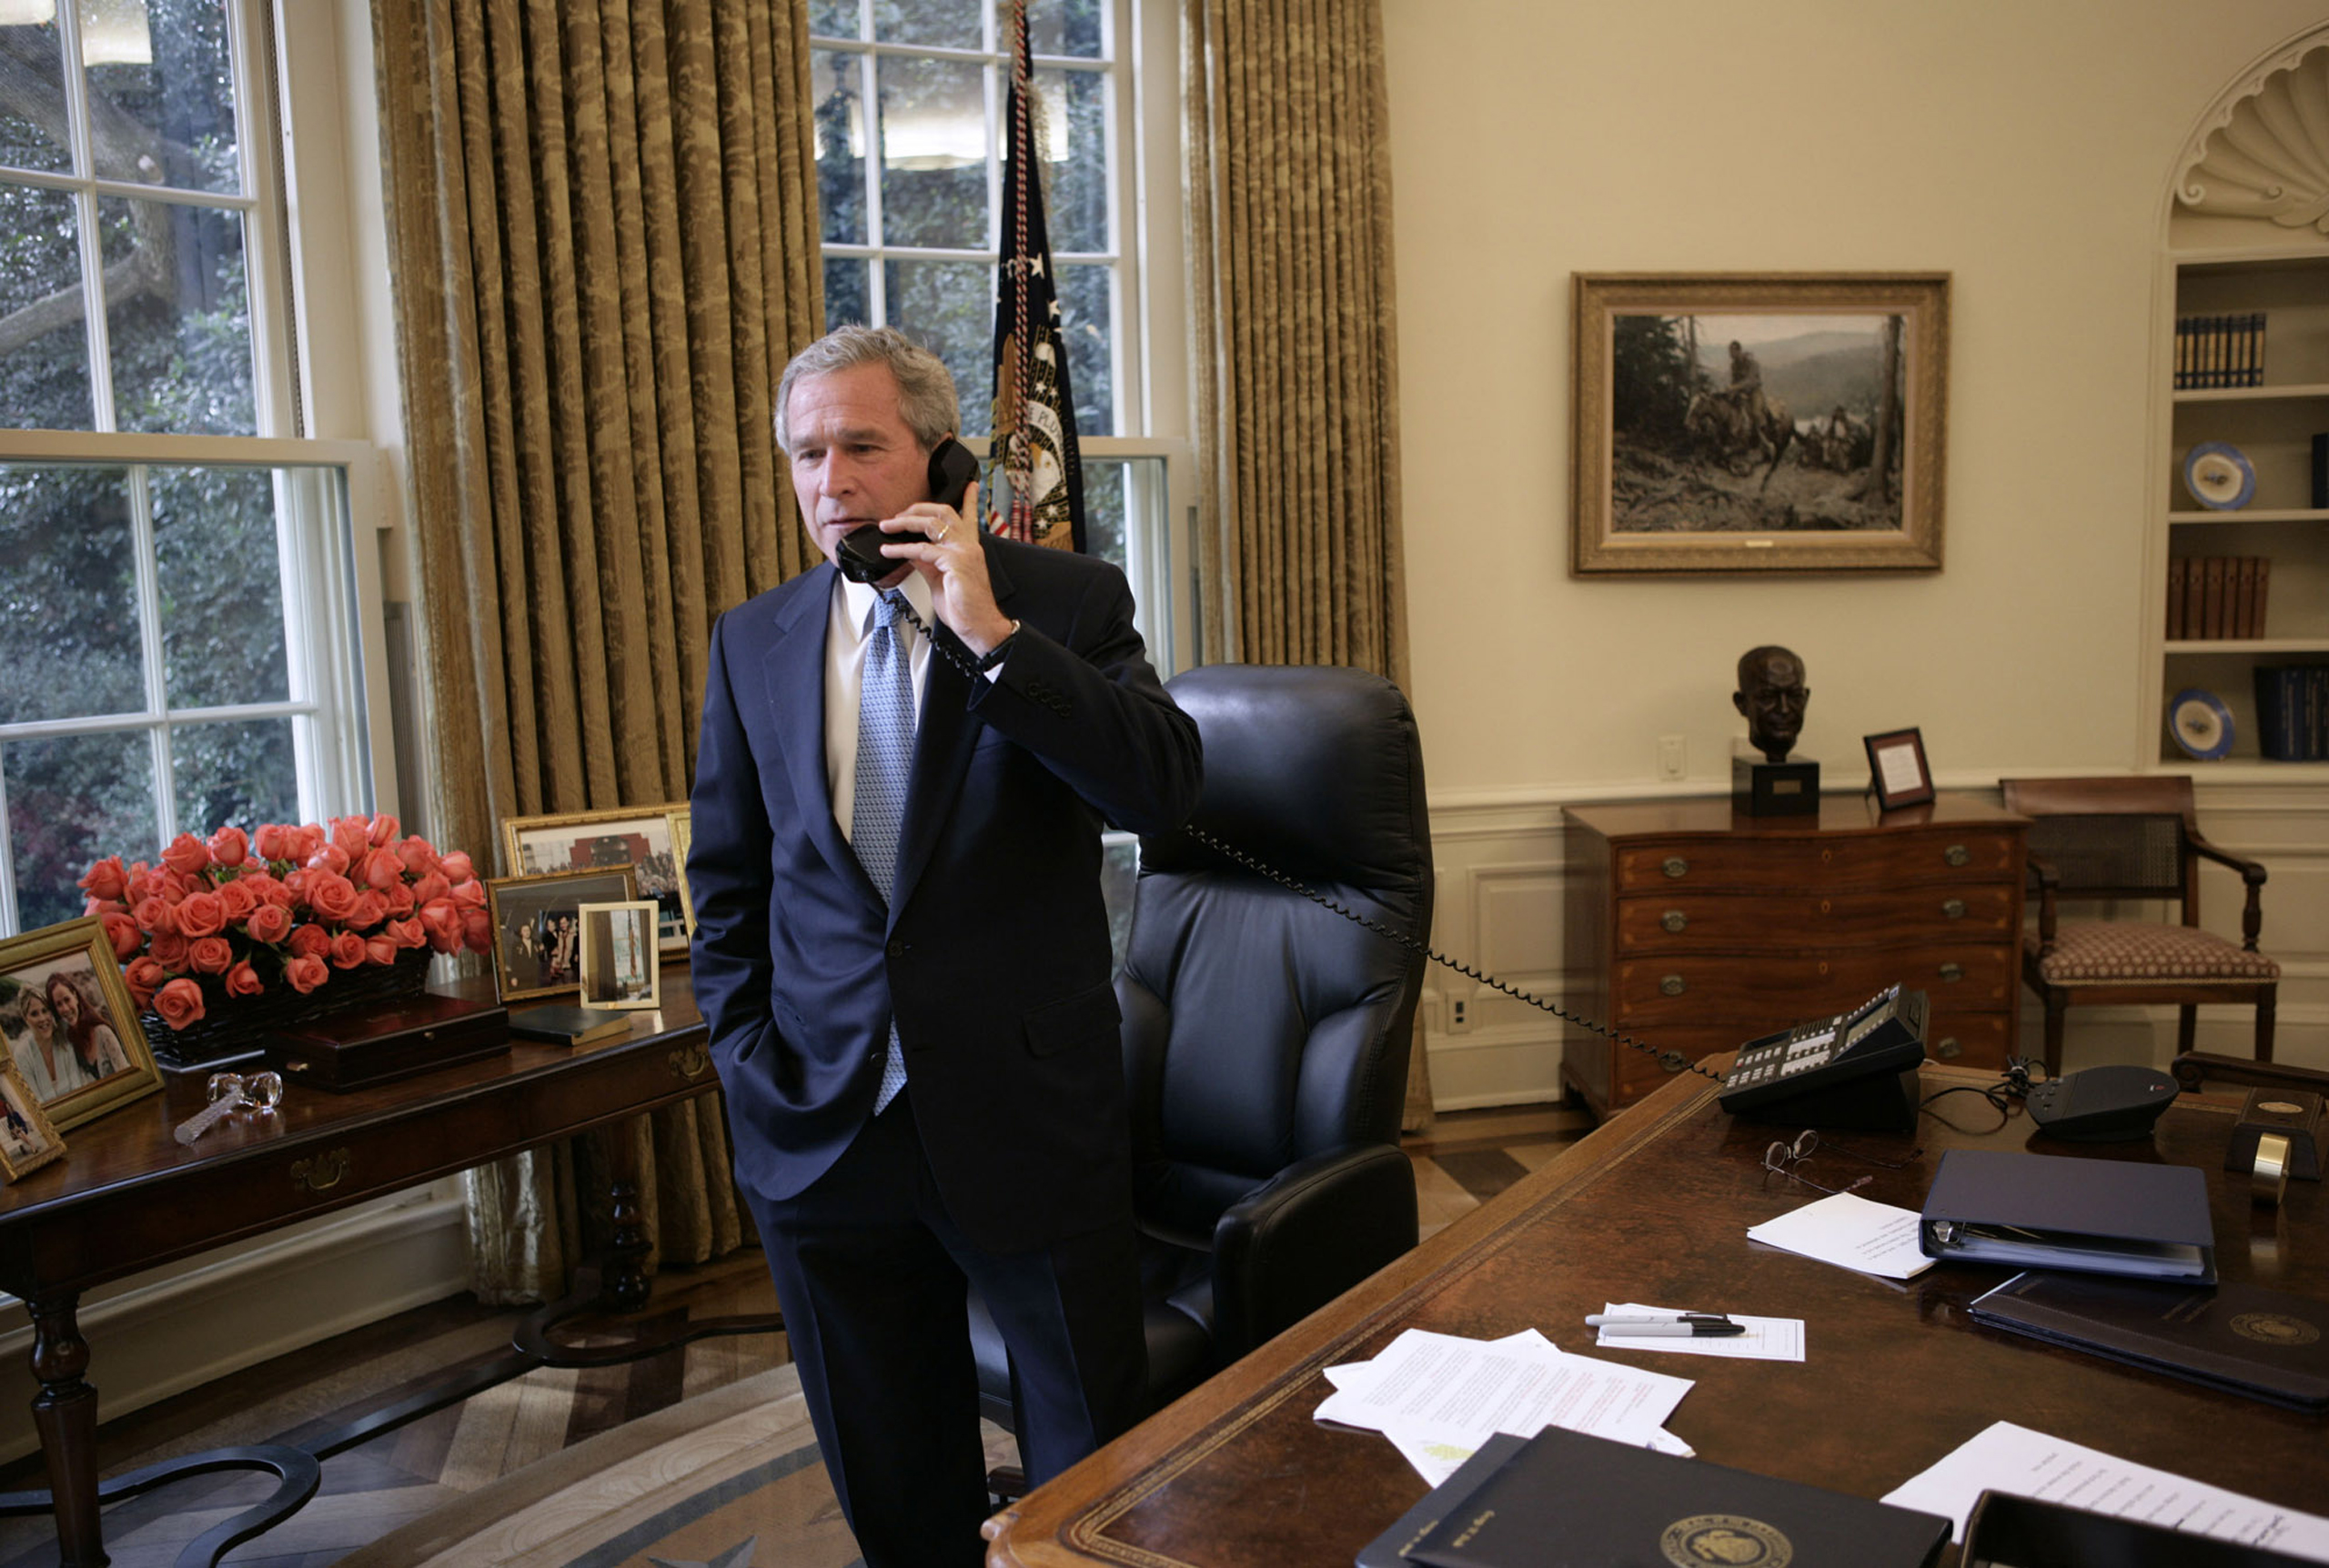 bush oval office. File:Bush Oval Office Phone Call.jpg Bush